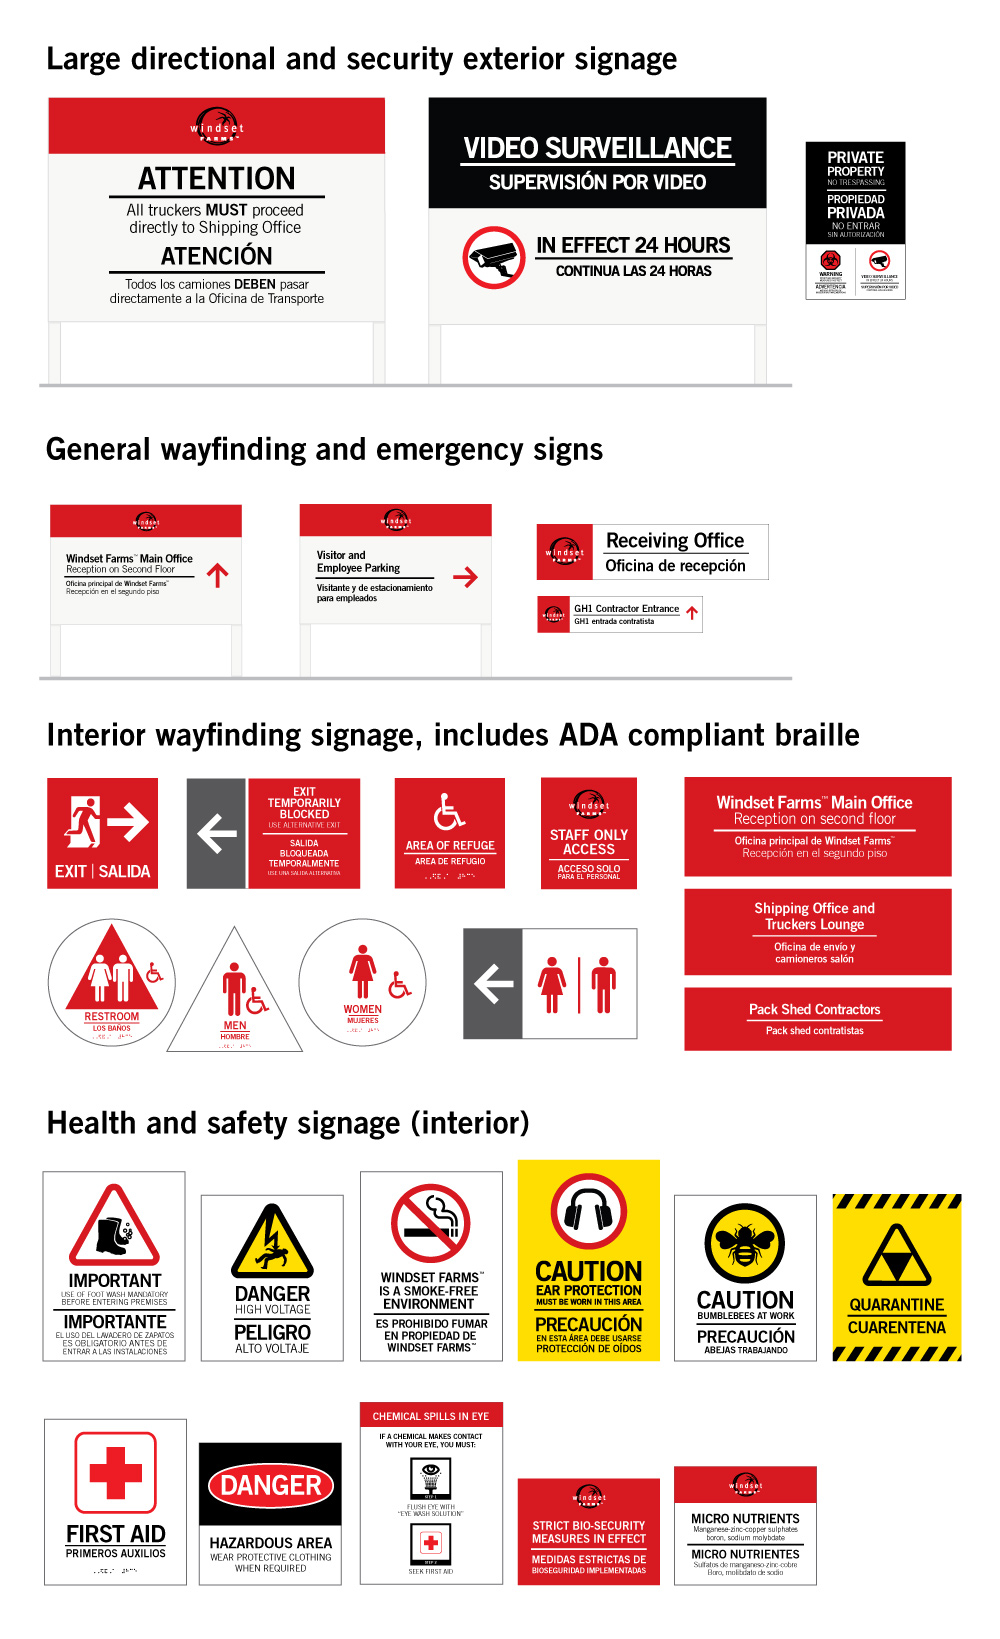 Overview of the different types of signage applied on site, ranging from large in-ground directional signage to the ADA compliant washroom signage.